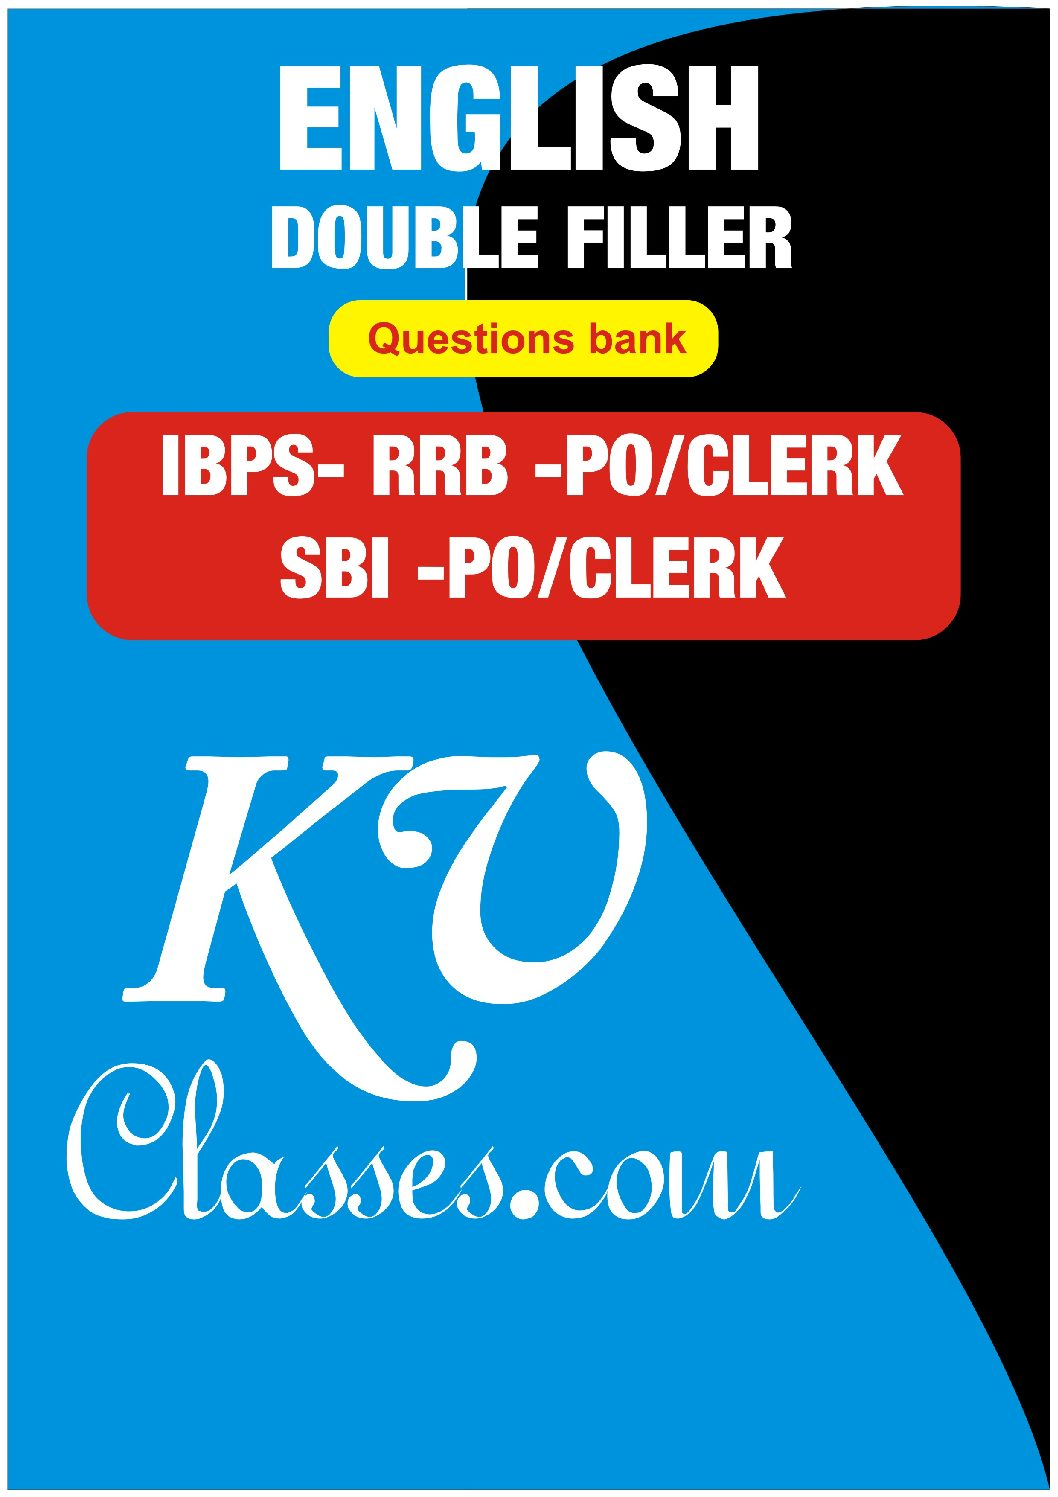 ENGLISH DOUBLE FILLER QUESTION BANK PDF DOWNLOAD-IBPS|SBI(PO/CLERK)